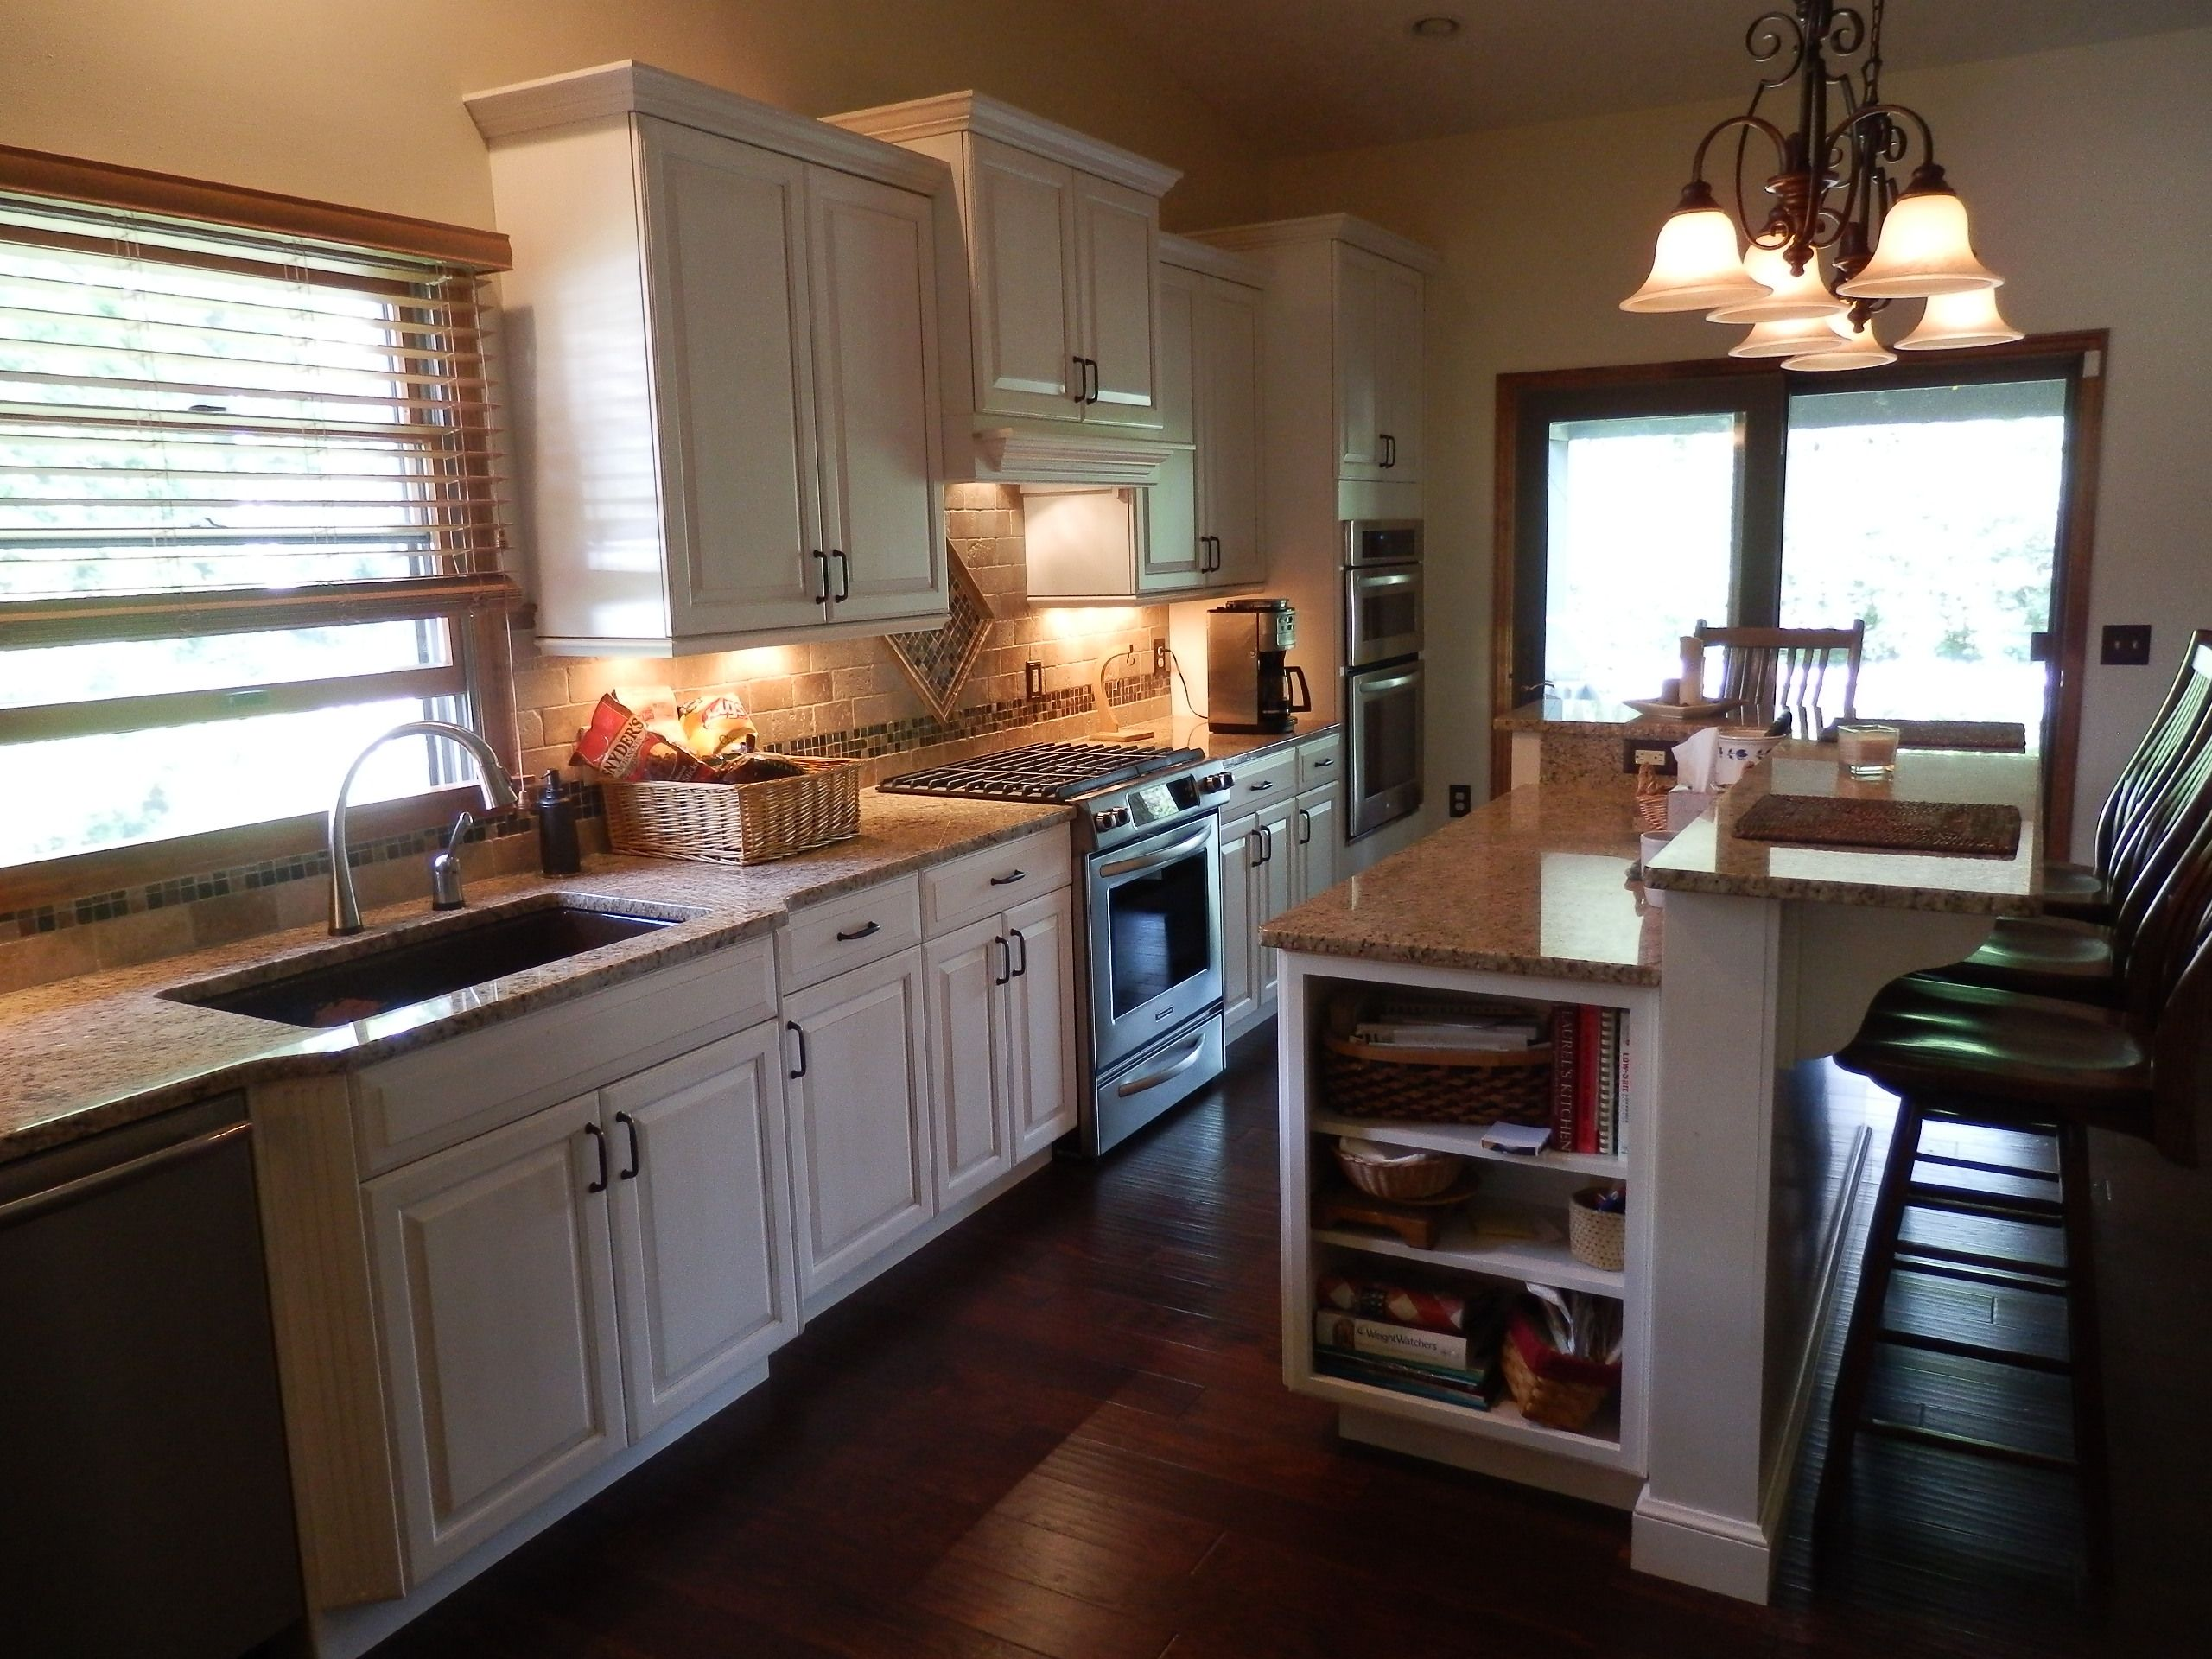 Bathroom Furniture Kitchen Remodeling Boston kitchen remodel requarth co cabinetry ultracraft doors style boston wood